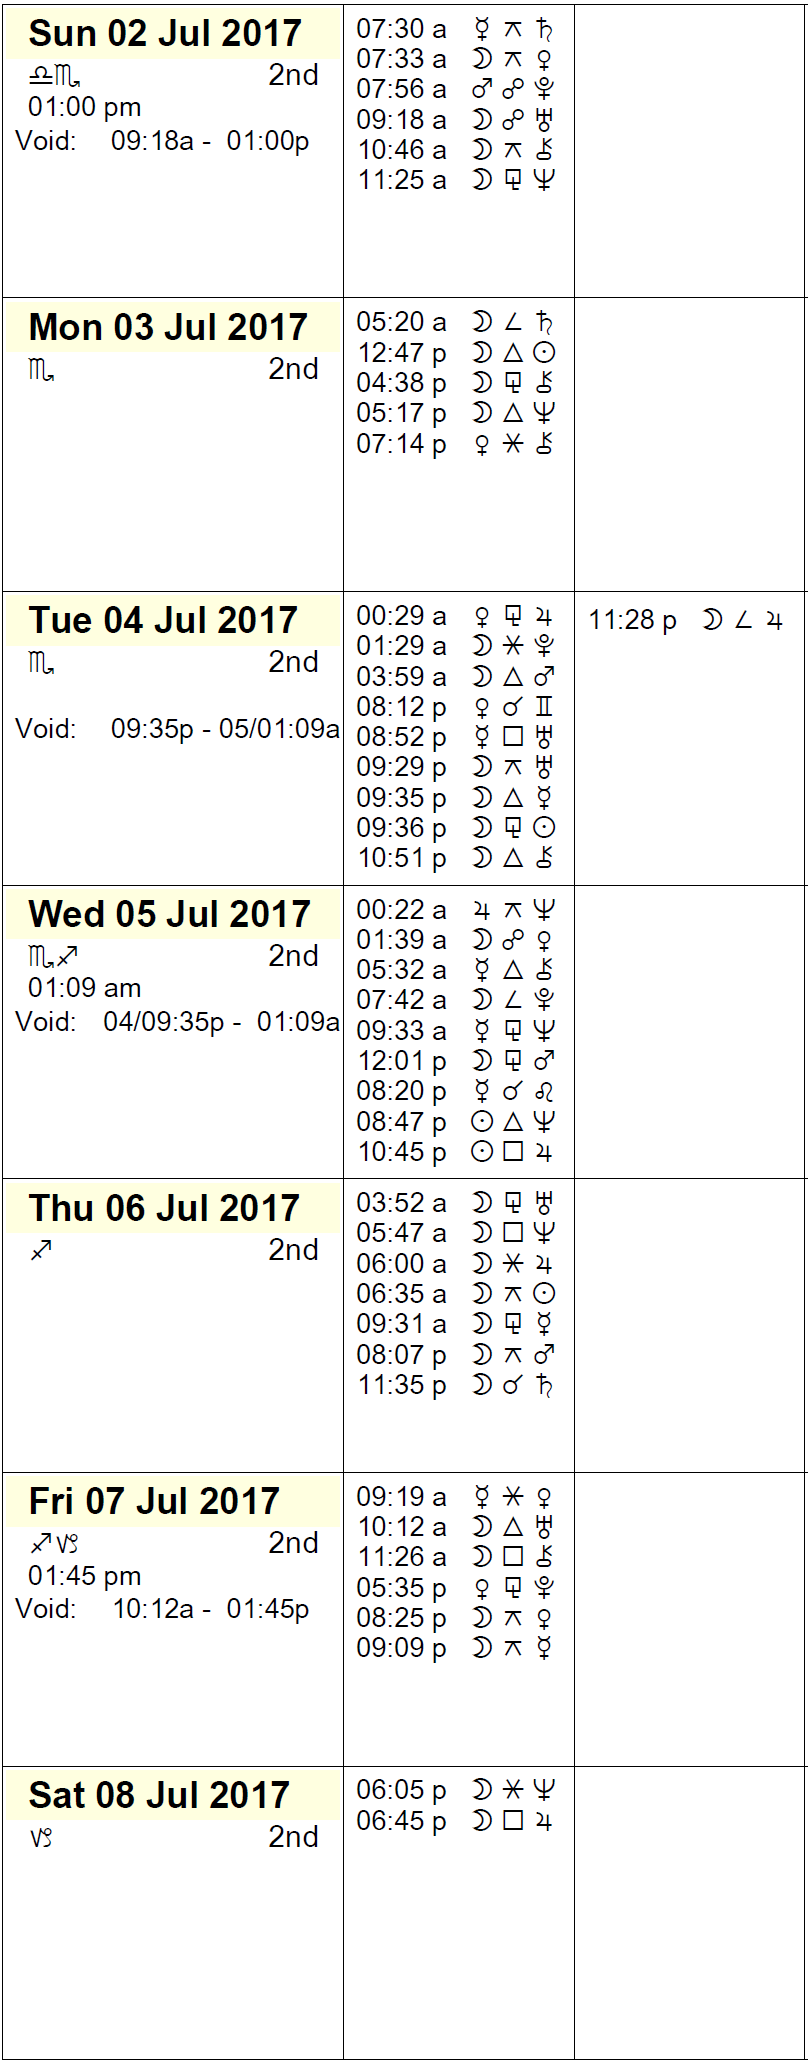 This Week in Astrology - July 2 to 8, 2017